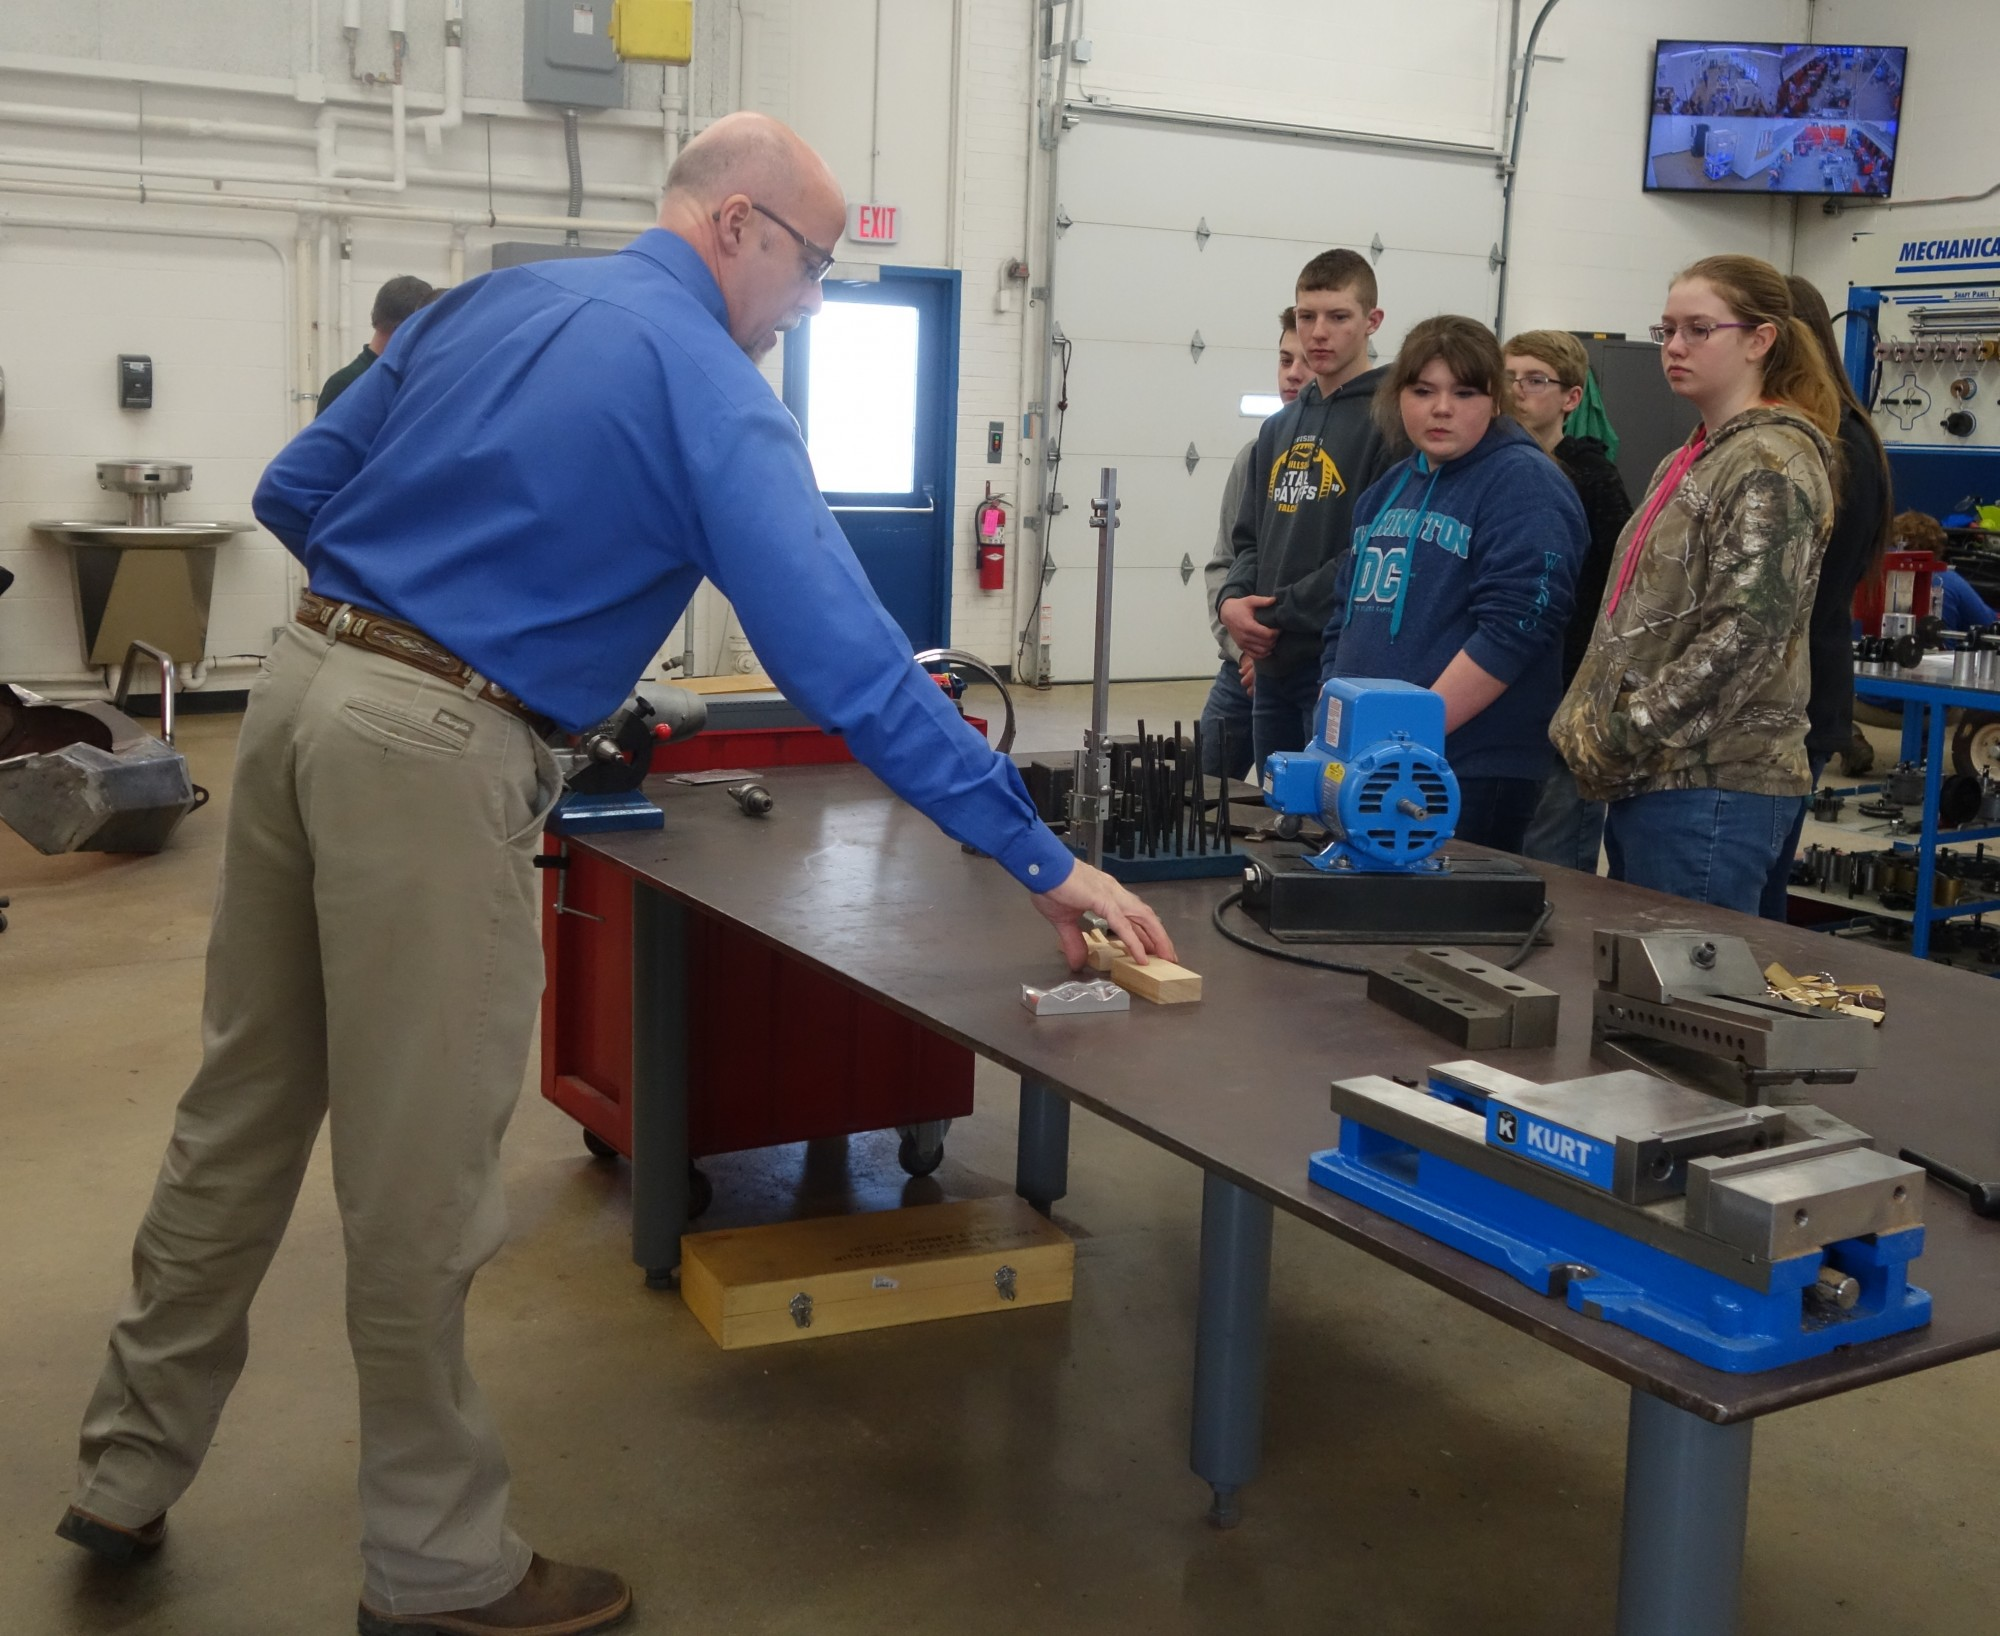 RAM instructor talks with visiting 8th graders.